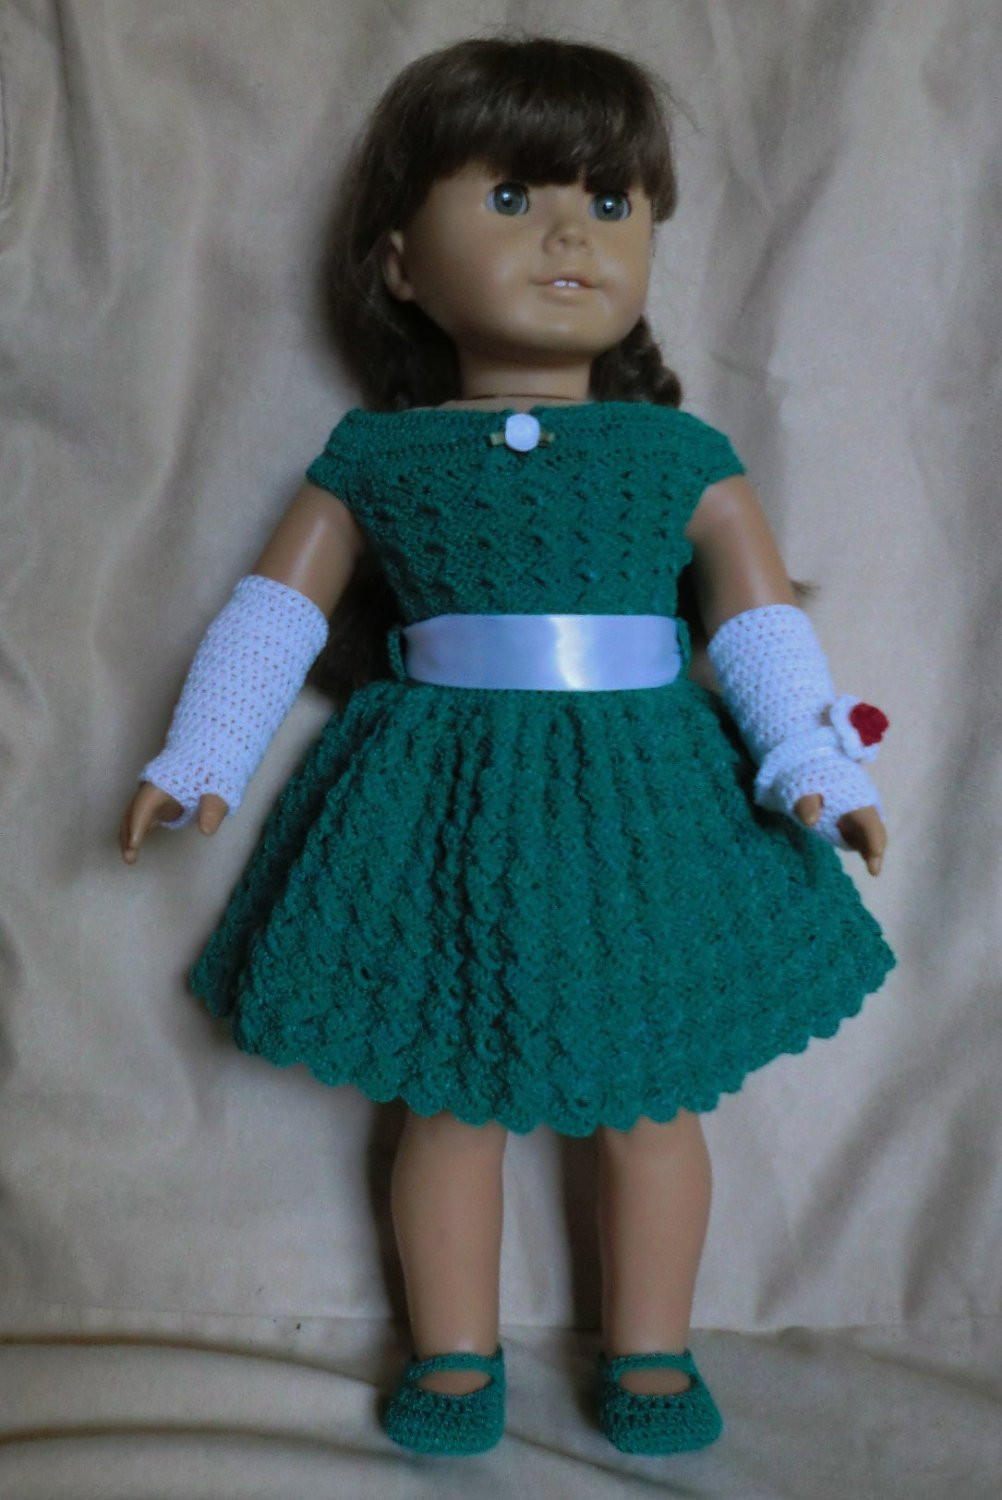 New 169 Holiday Outfit Crochet Pattern for American Girl Dolls American Girl Doll Christmas Outfits Of Wonderful 40 Ideas American Girl Doll Christmas Outfits